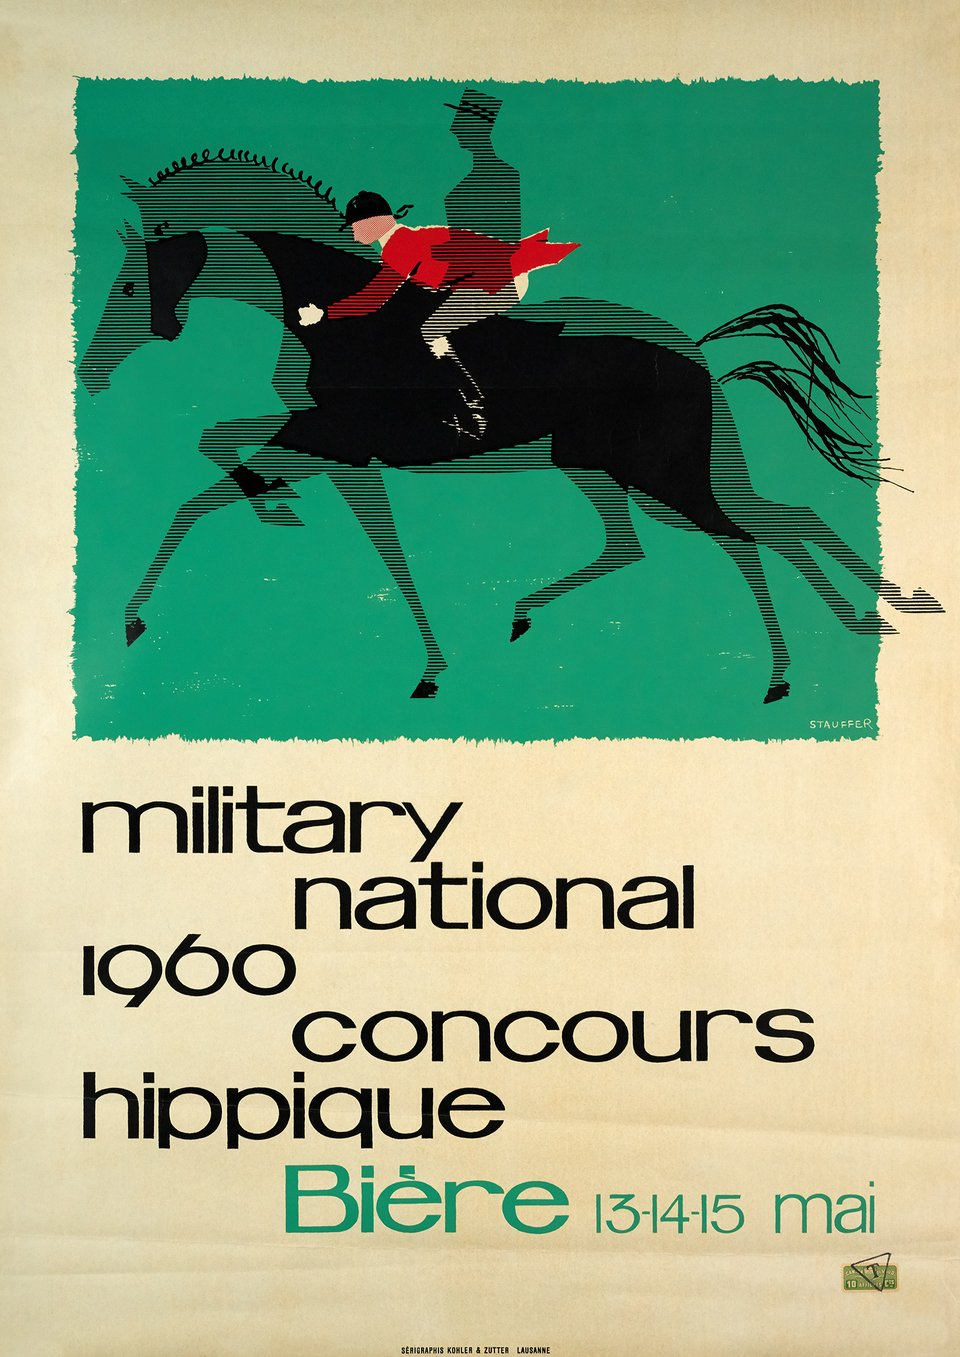 Concours hippique, military national – Affiche ancienne – STAUFFER – 1960